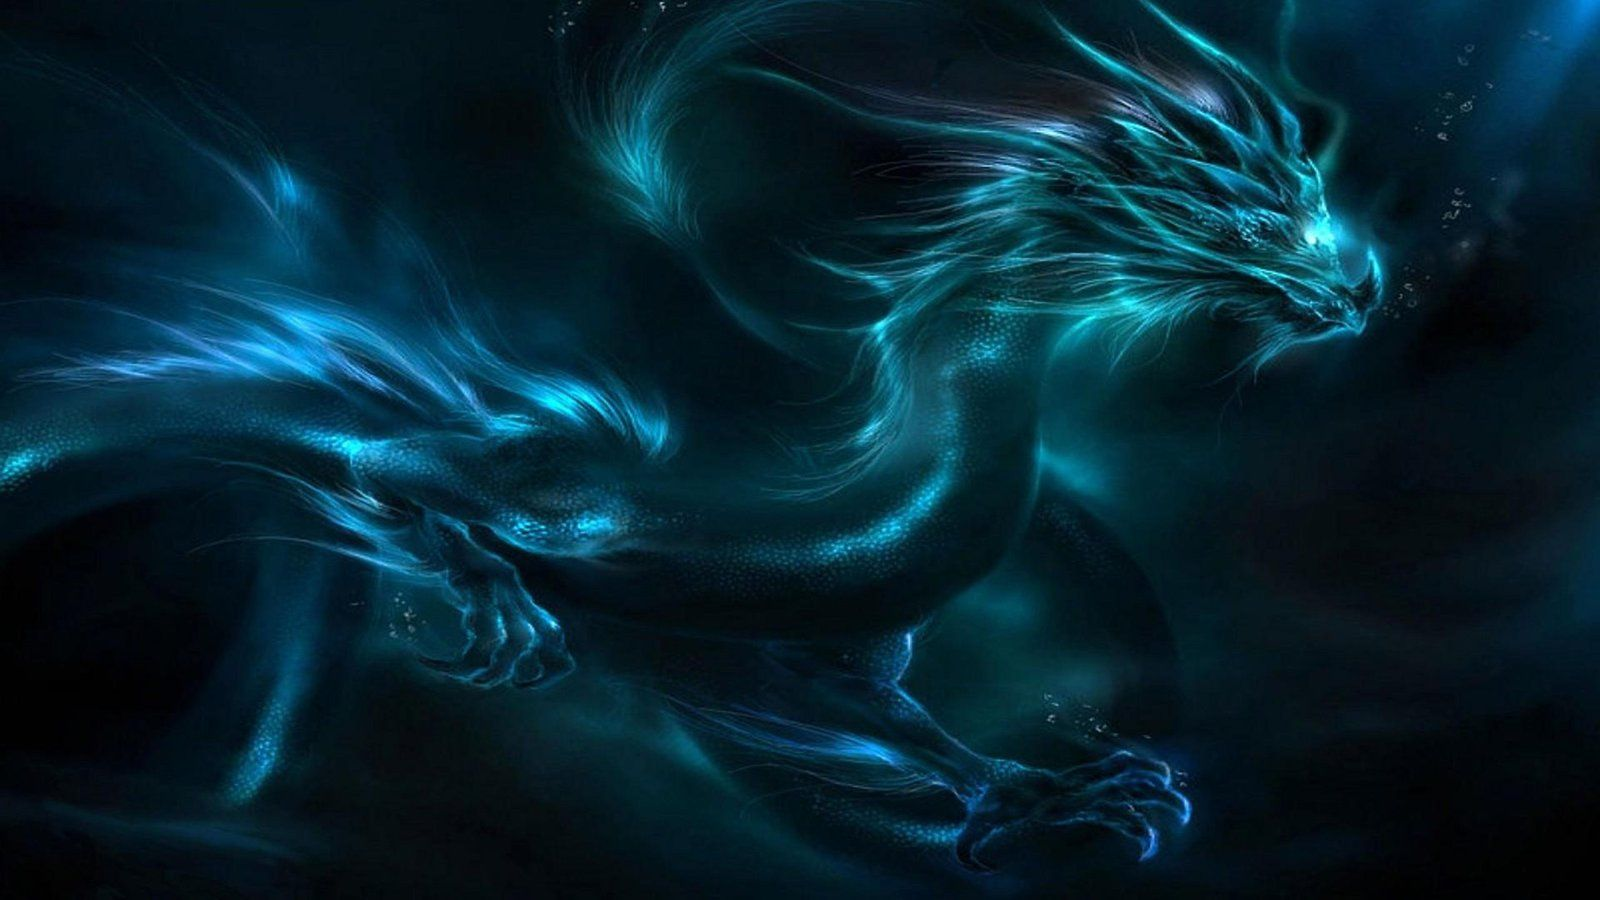 Wallpaper download live - Dragon Hd Live Wallpaper Android Apps And Tests Androidpit